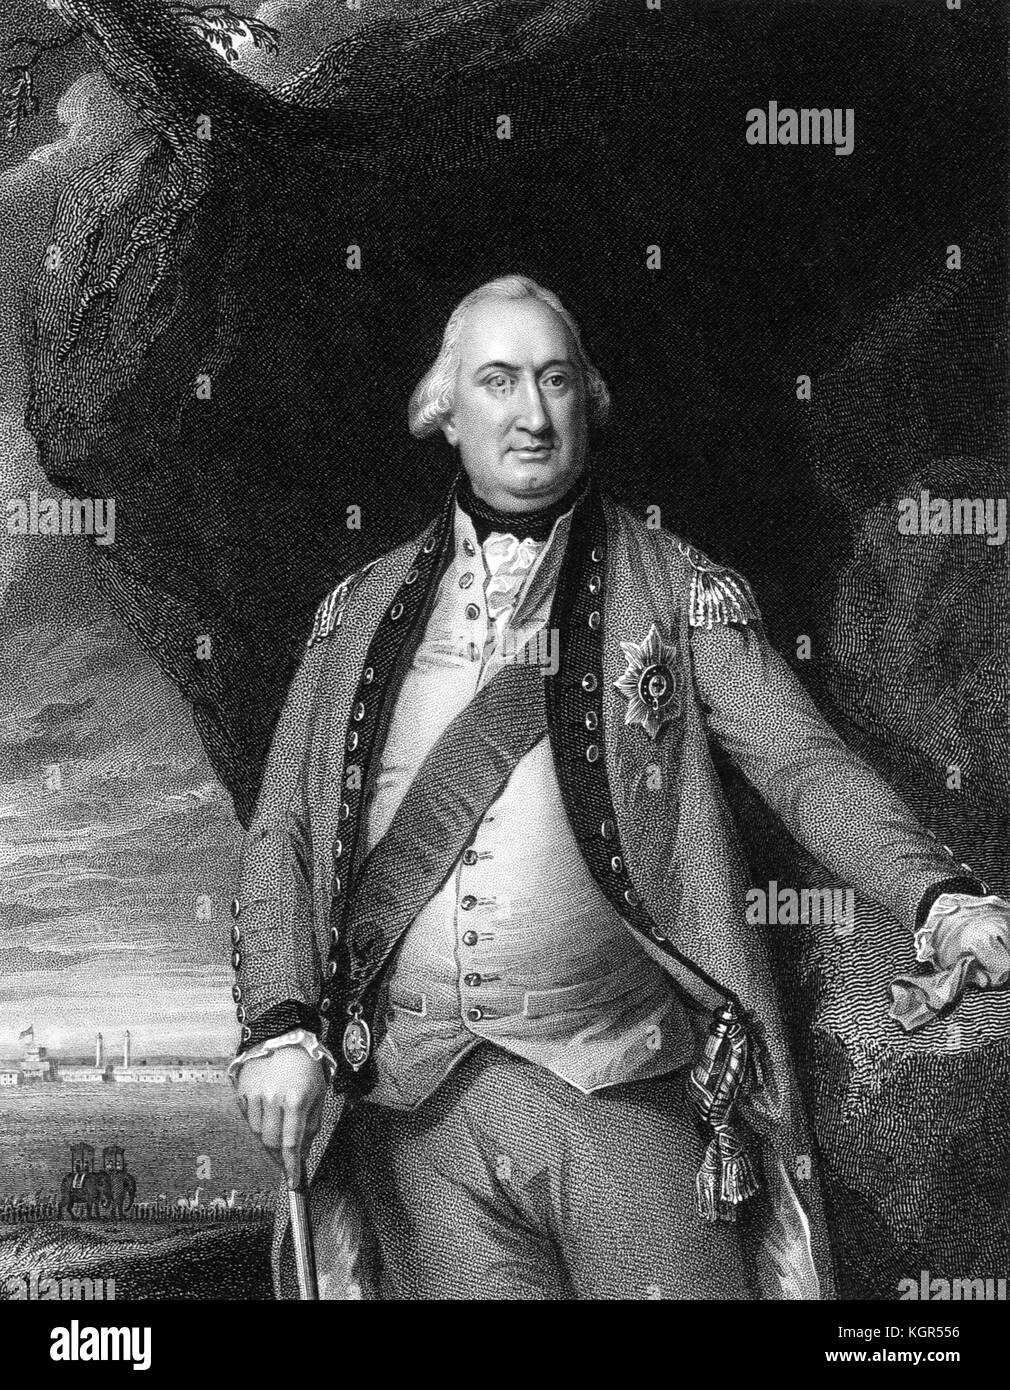 Charles Cornwallis, 1st Marquess Cornwallis (1738-1805),  engraving after a portrait by John Singleton Copley, c - Stock Image